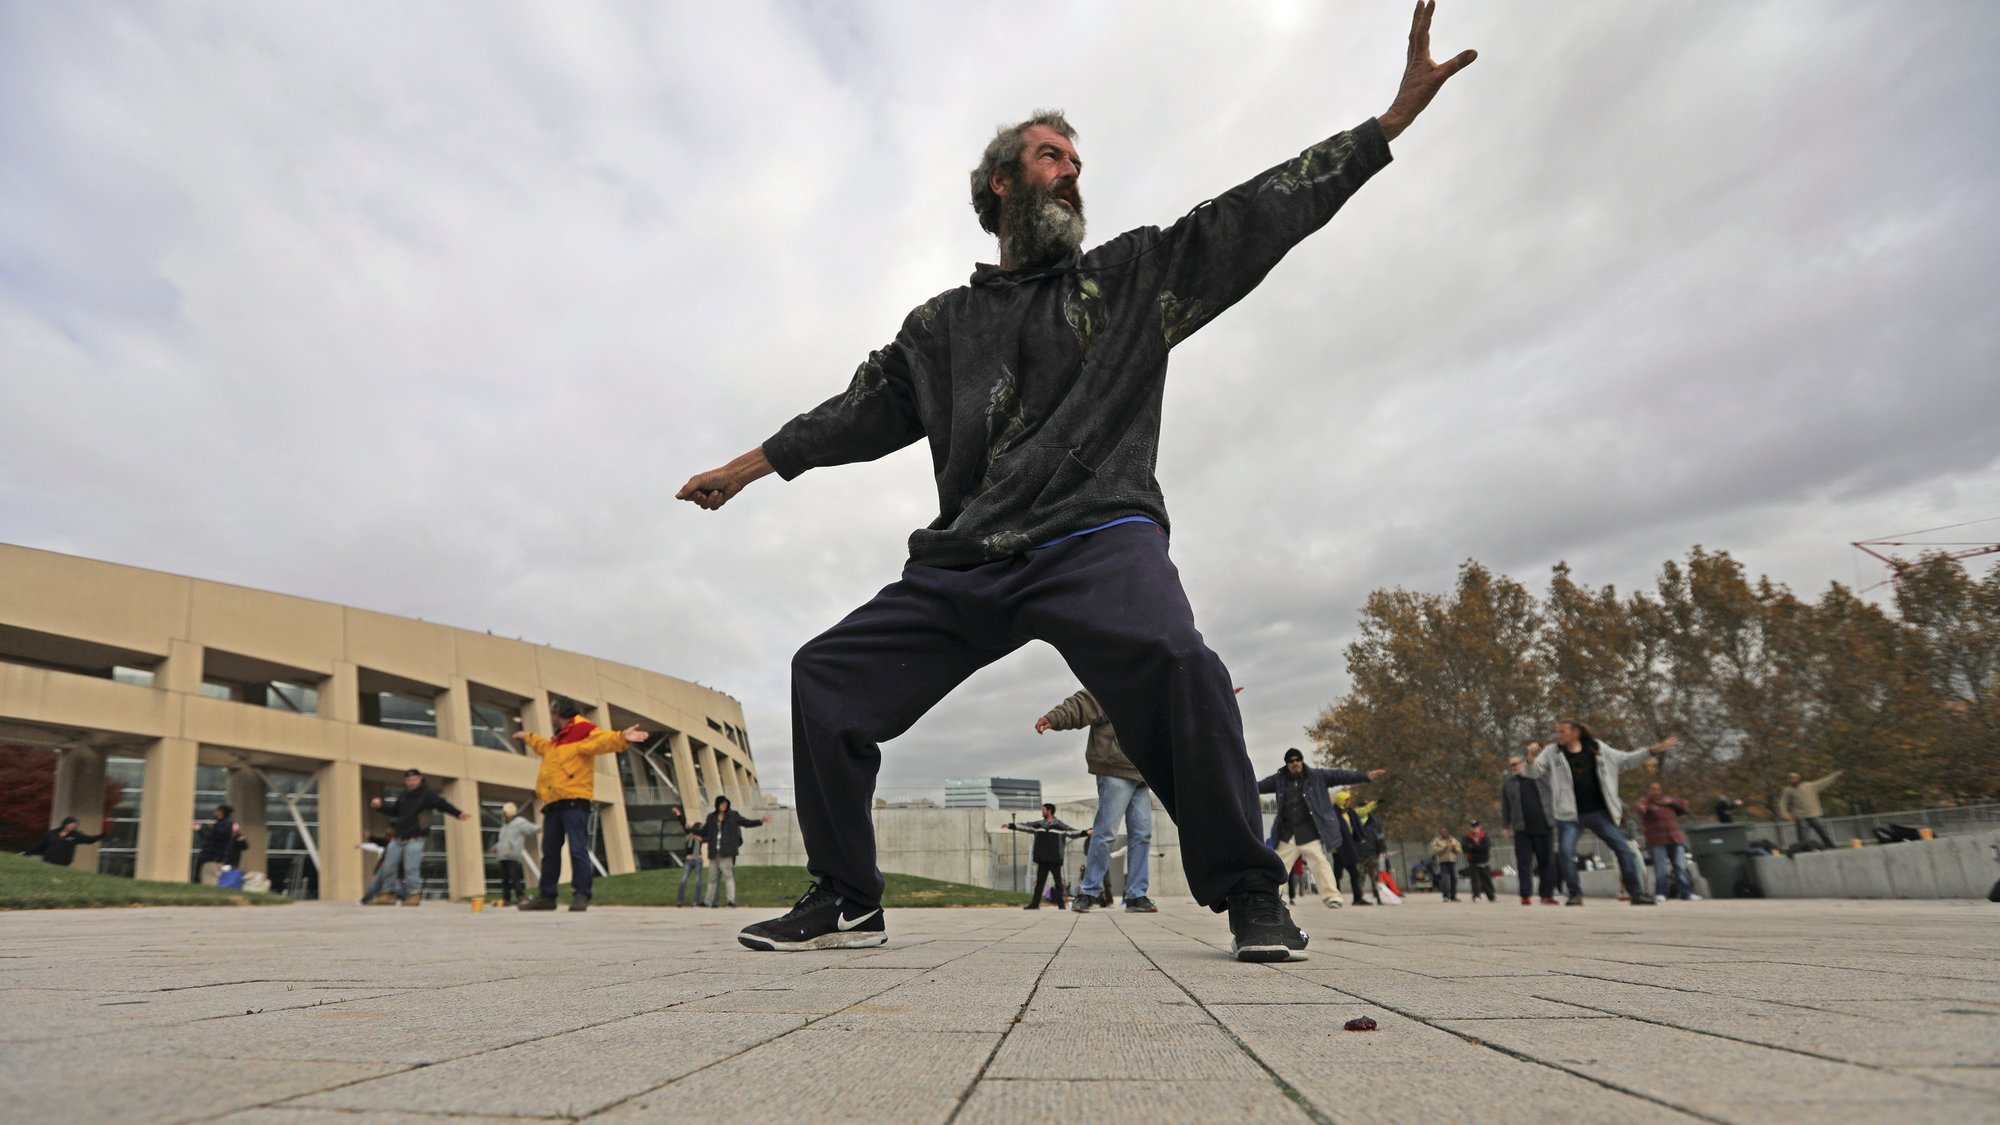 PHOTOS BY THE ASSOCIATED PRESS  David Christopher Coons performs tai chi at the Salt Lake City Main Library in Salt Lake City, Utah.  The participants are homeless people who take part in a free tai chi program run by a retired couple who started the classes three years earlier. Coons was fired from his job as an electrician about five years ago. He has been homeless since, vacillating between sleeping in shelters or on the streets.